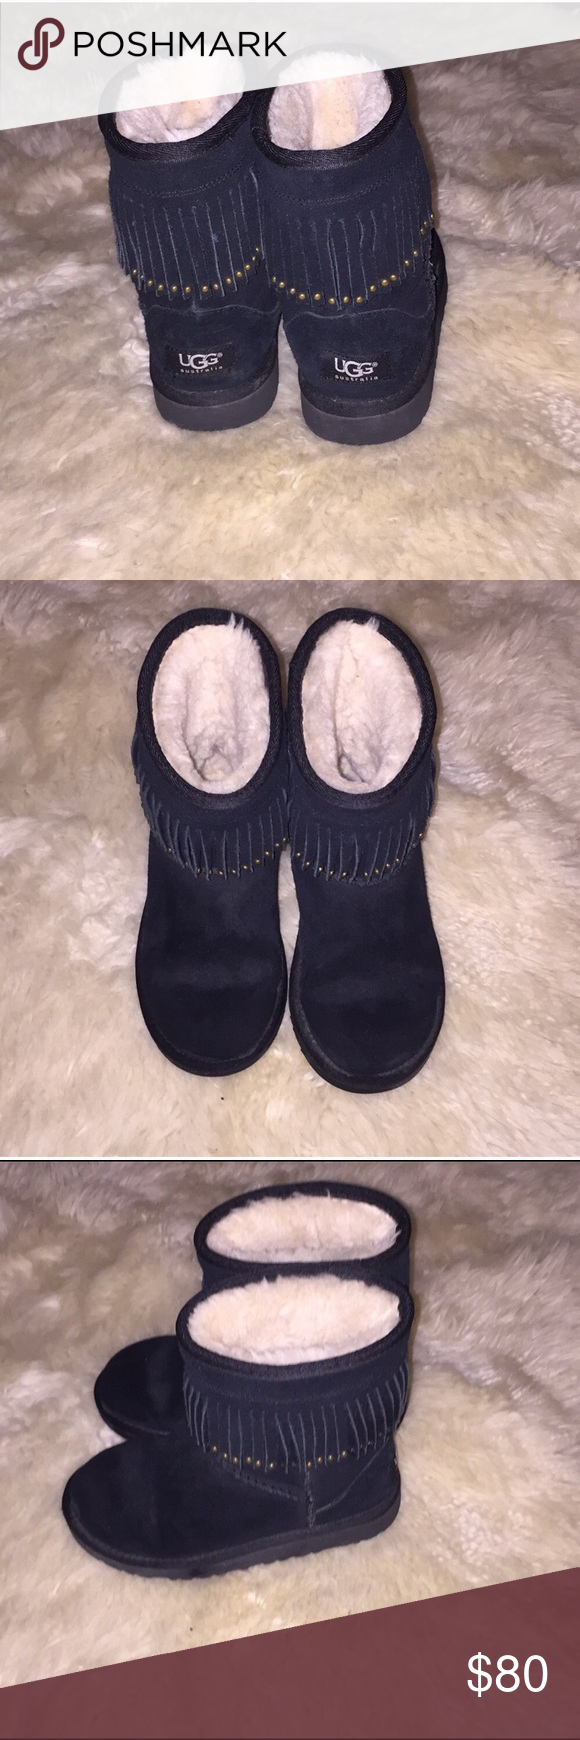 Black Fringe Studded Ugg Boots Excellent Condition, Worn a few times Black Fringe Studded Ugg Boots Big Girls Size 4/Women's Size 6 UGG Shoes #uggbootsoutfitblackgirl